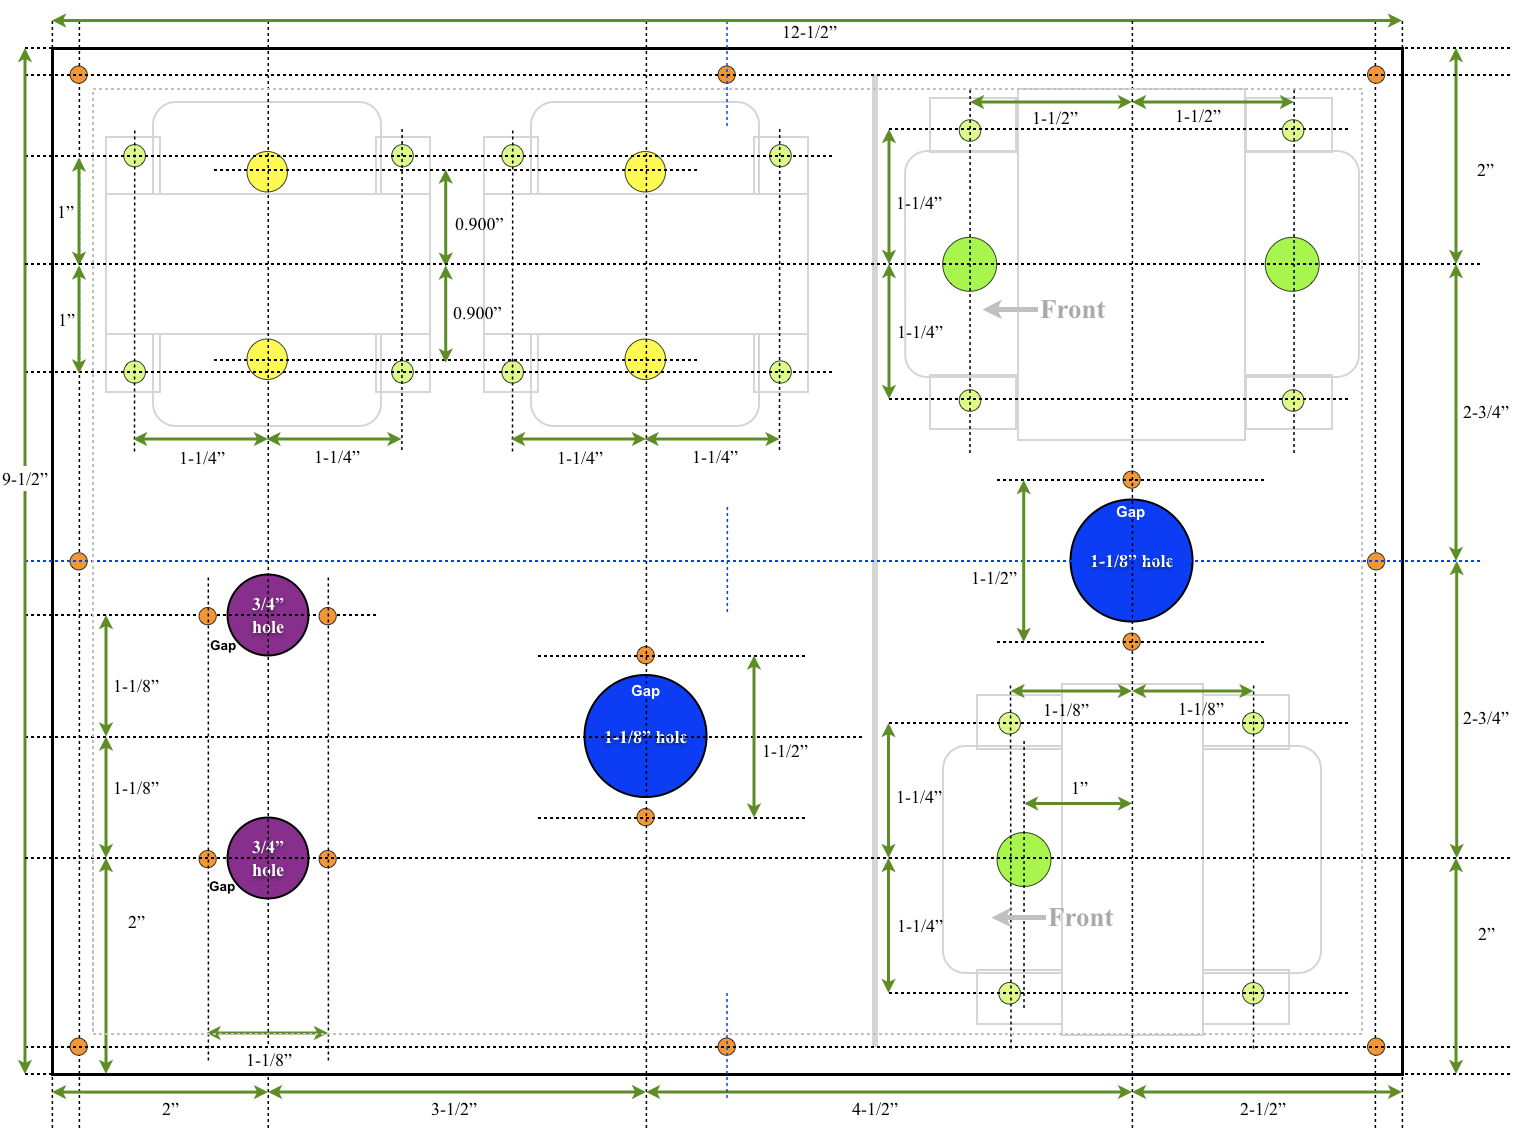 The 6336 Set Amp Cascade Tubes Block Diagram Of Headphone Amplifier Ip Core Overall Design Came Together Nicely Internal Layout Is Not Too Cramped Despite Amount Circuitry Under Plate Heres A Look At It